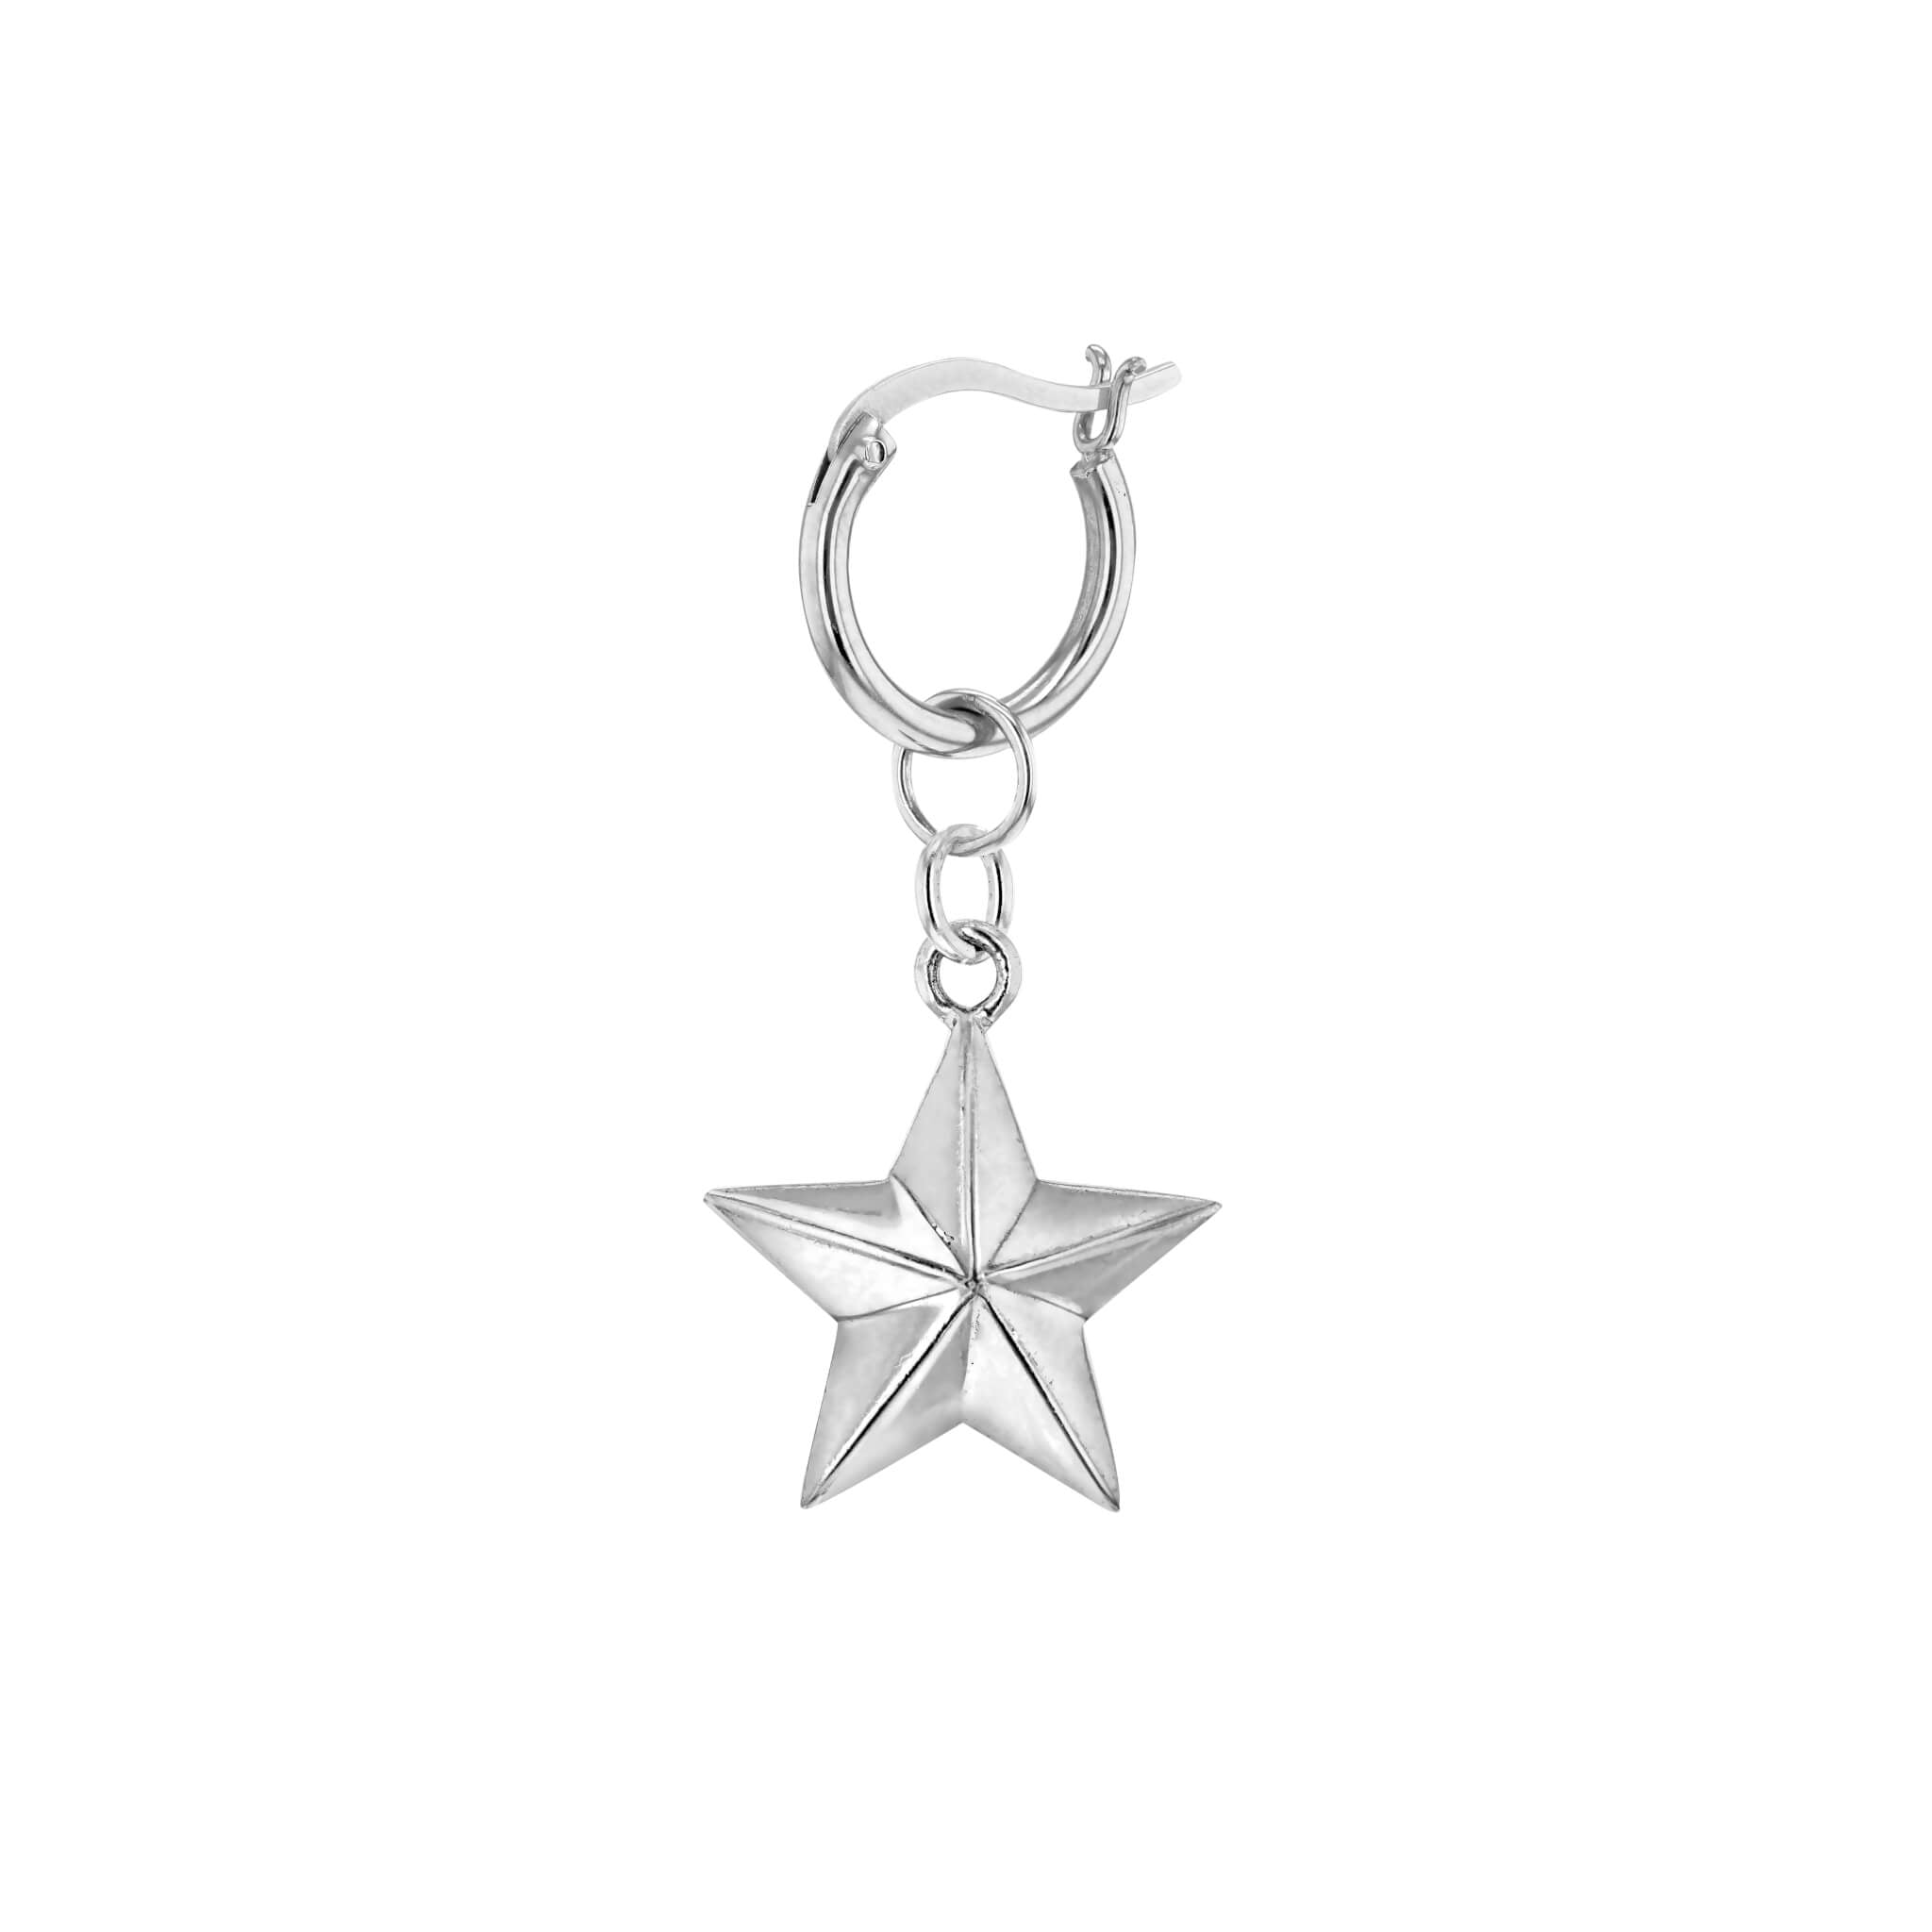 Star Hoop Earring in Silver